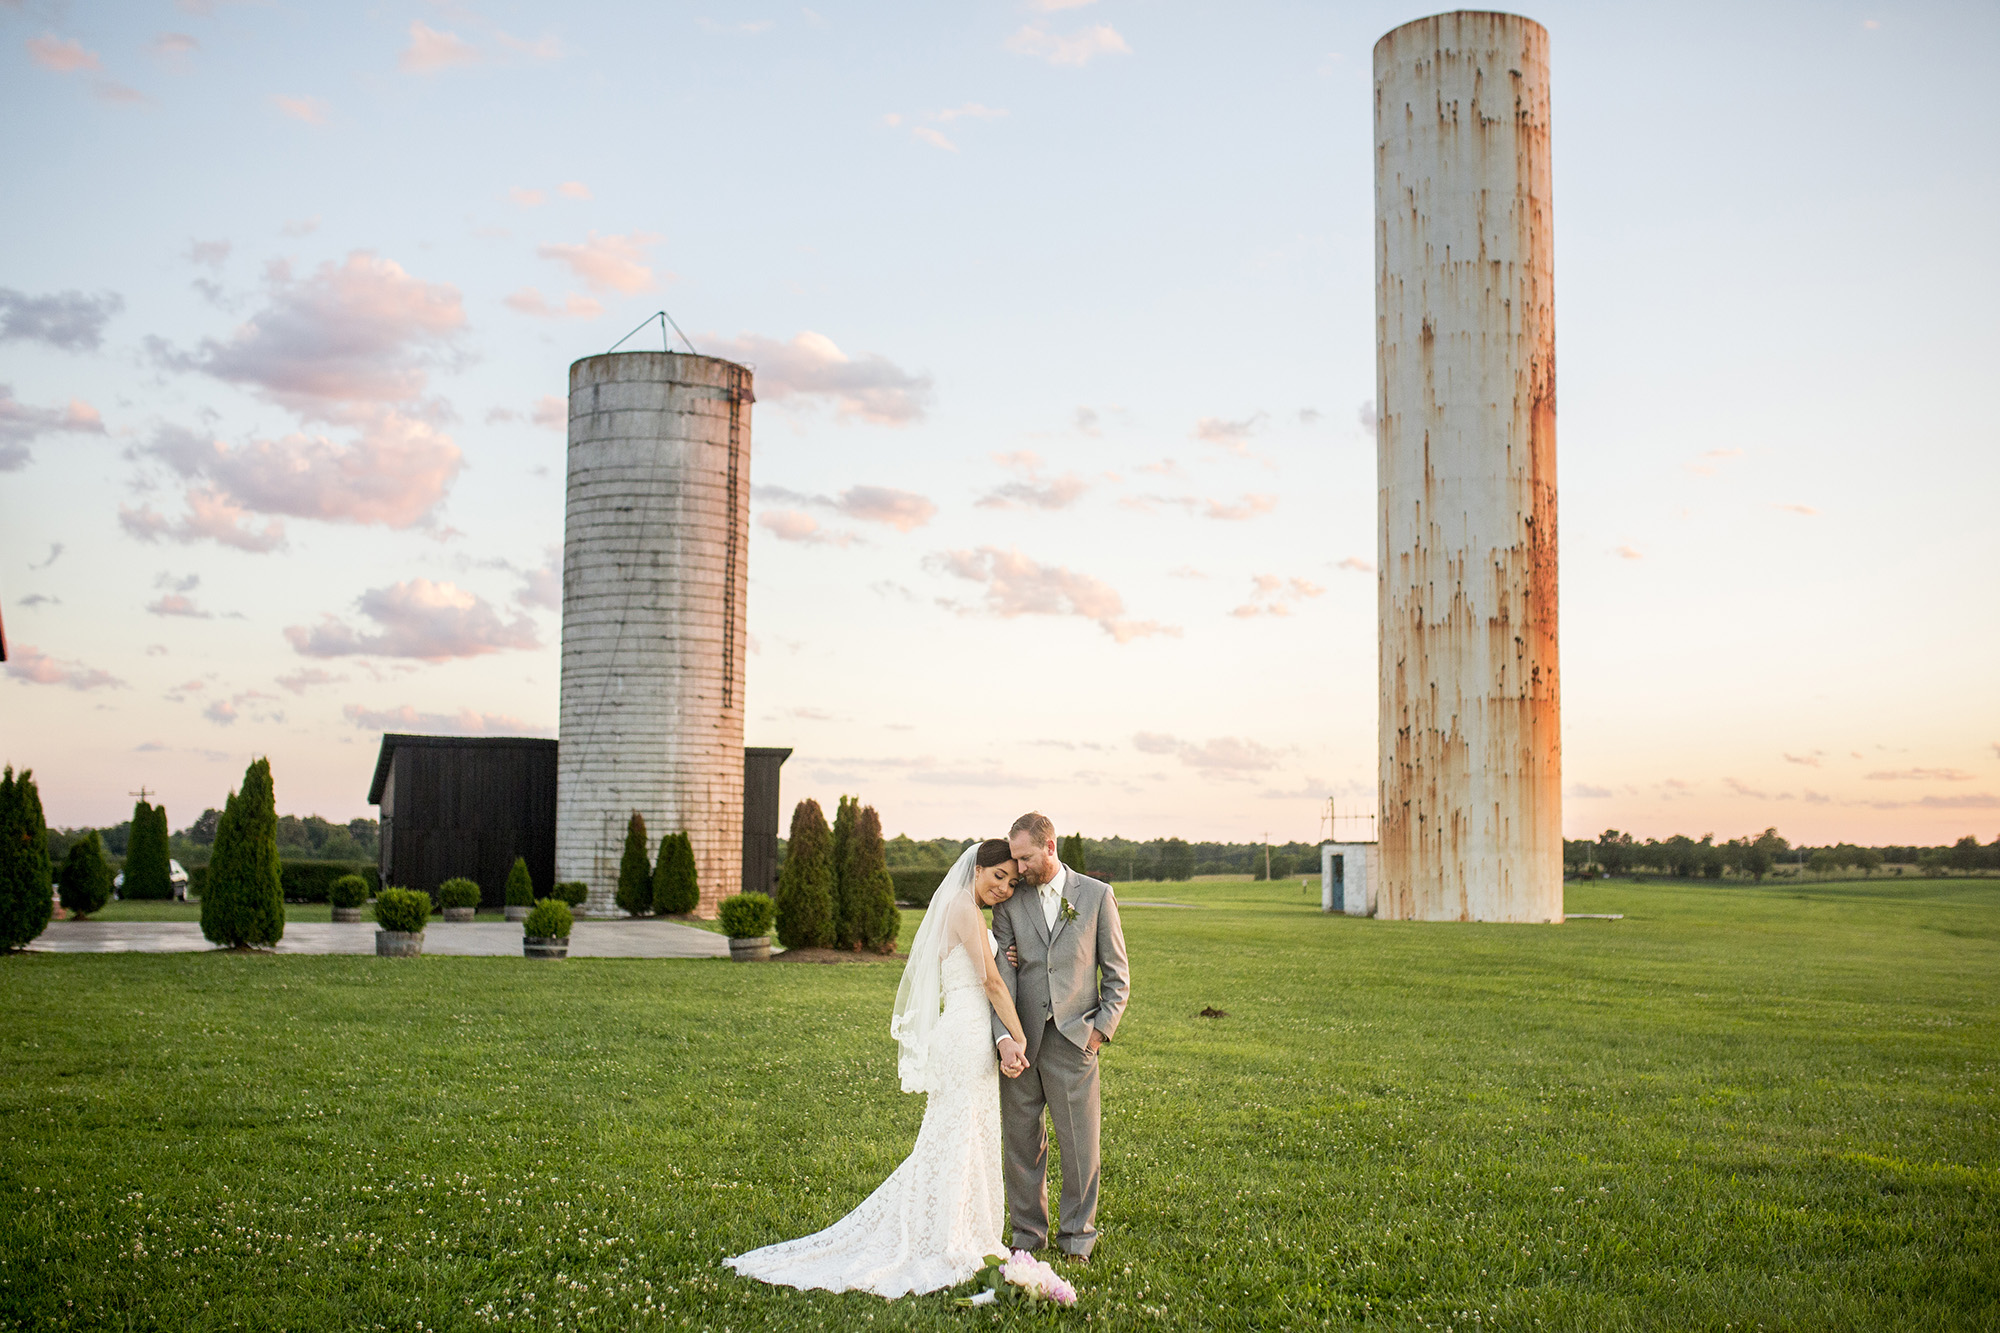 Seriously_Sabrina_Photography_Lexington_Kentucky_Talon_Winery_Wedding_Kjellsen177.jpg